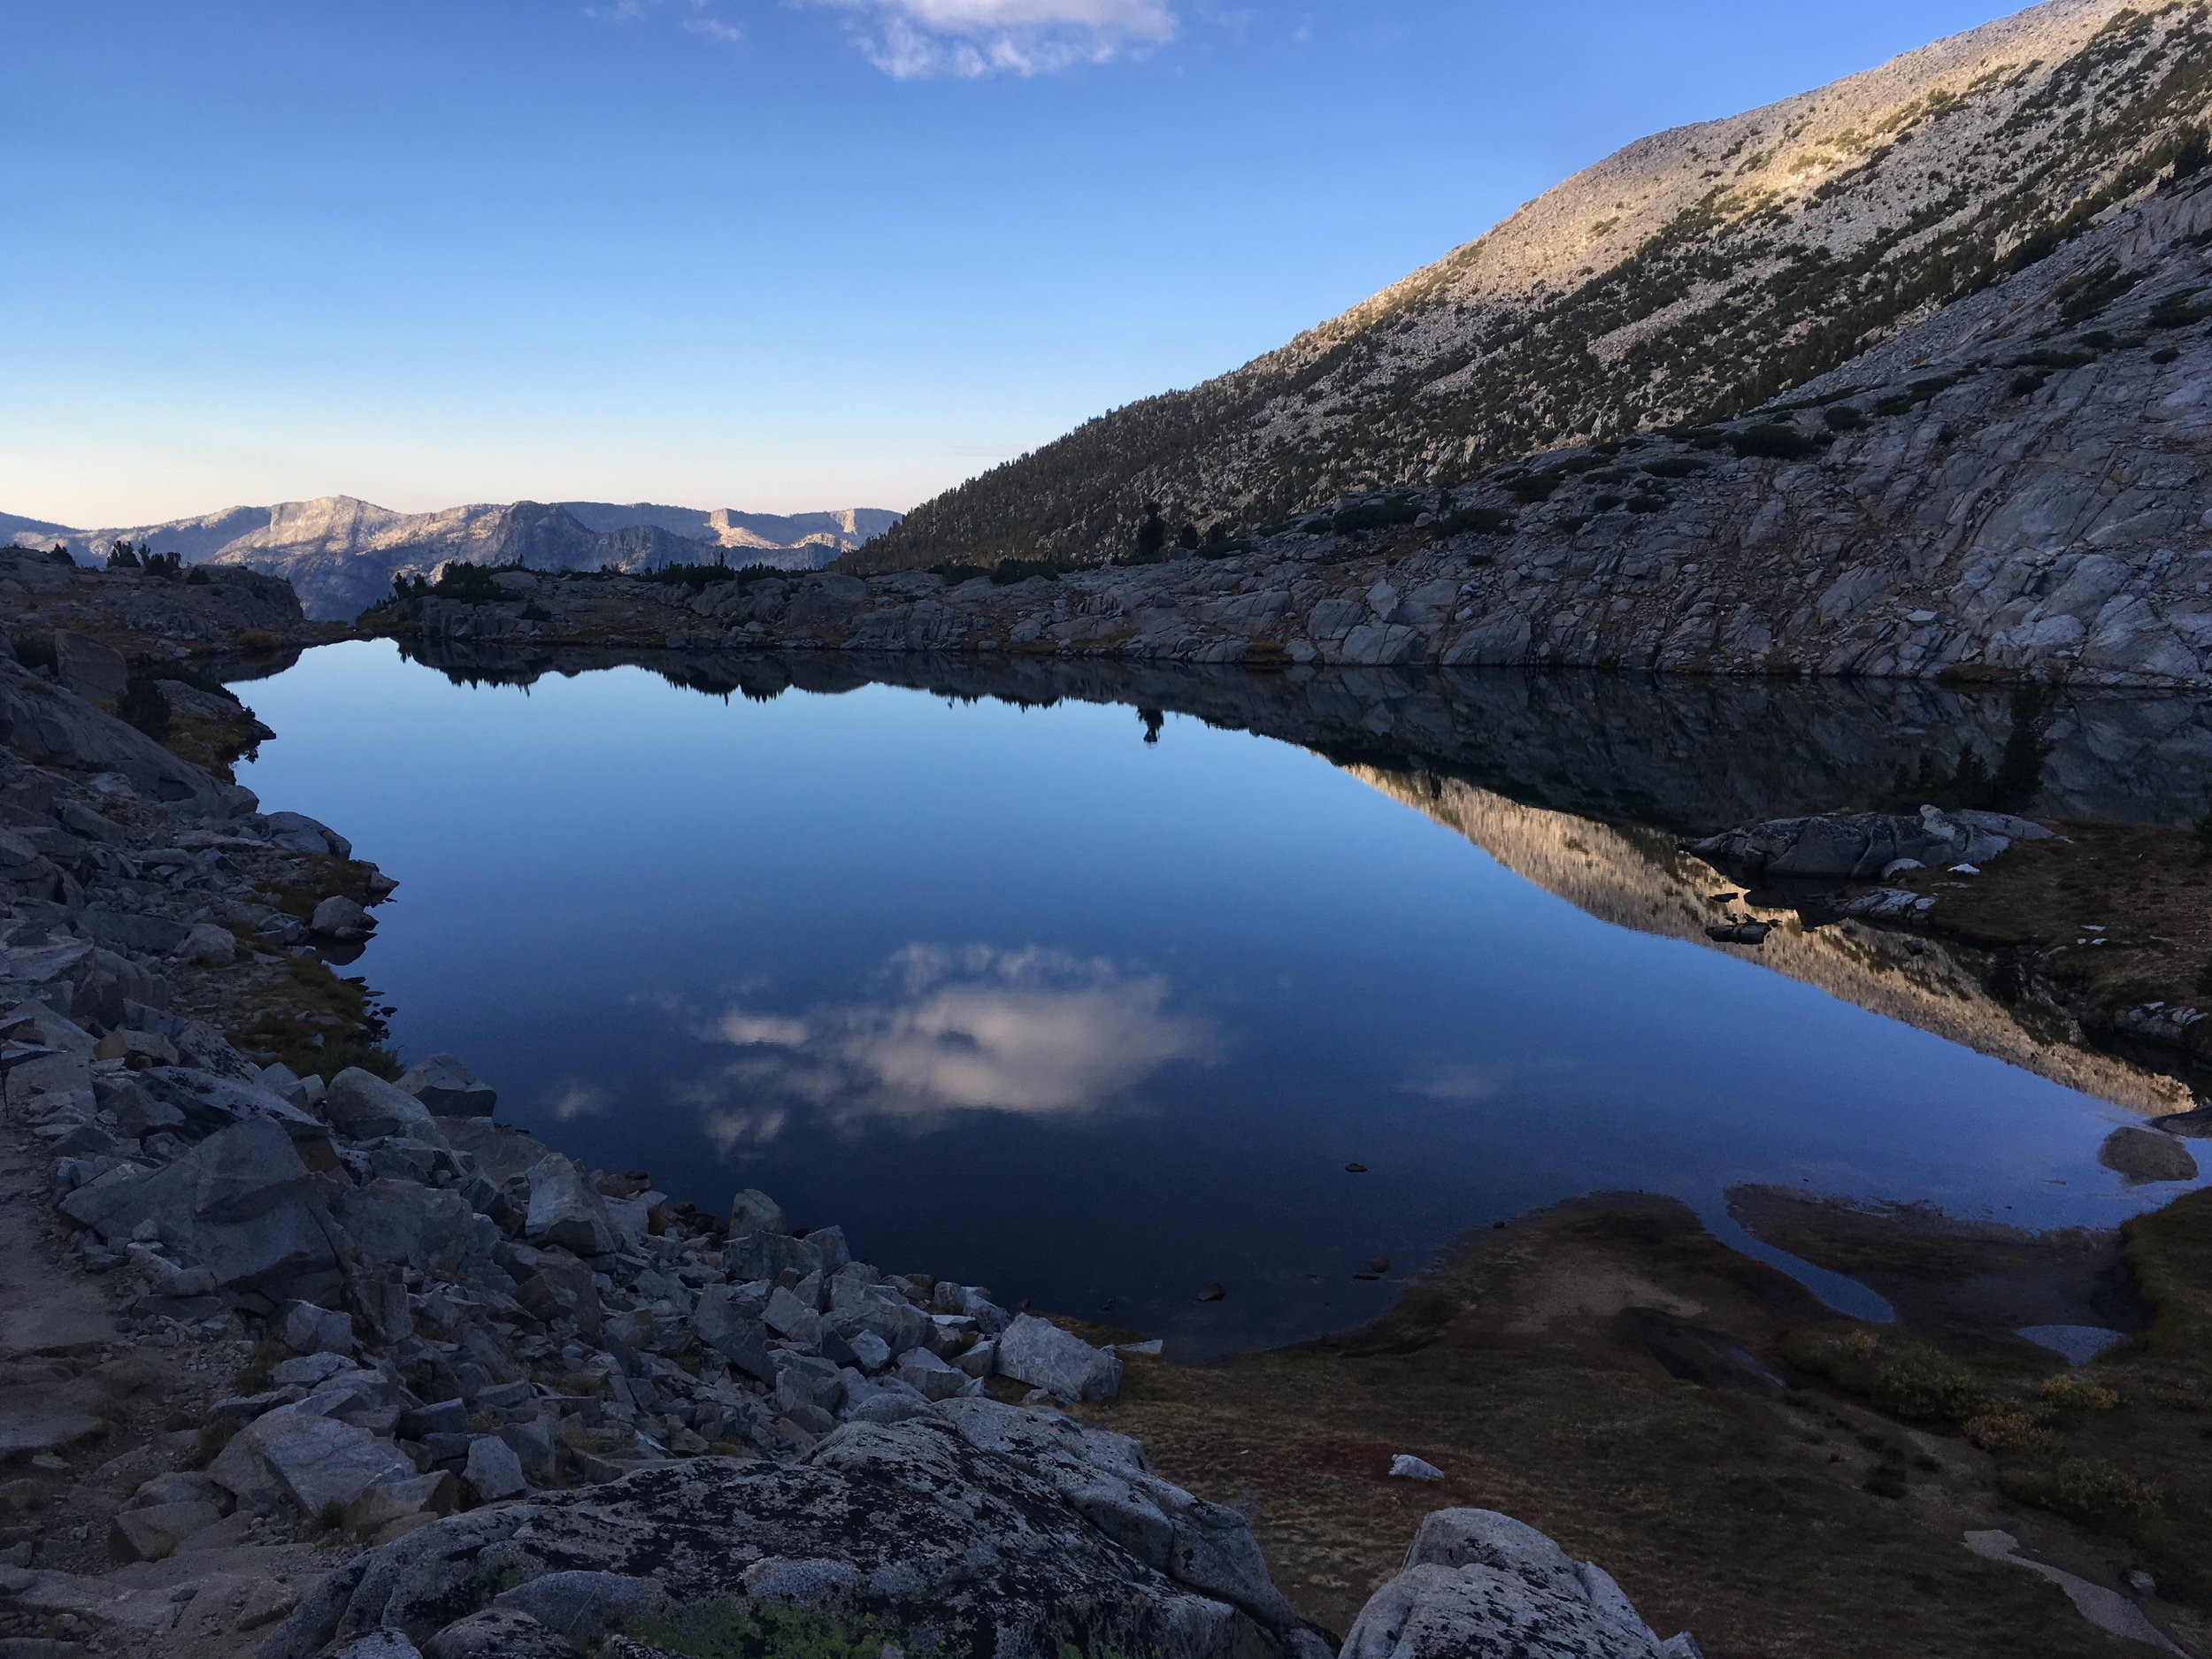 Heart Lake, with its infinity edge and still as a mirror.